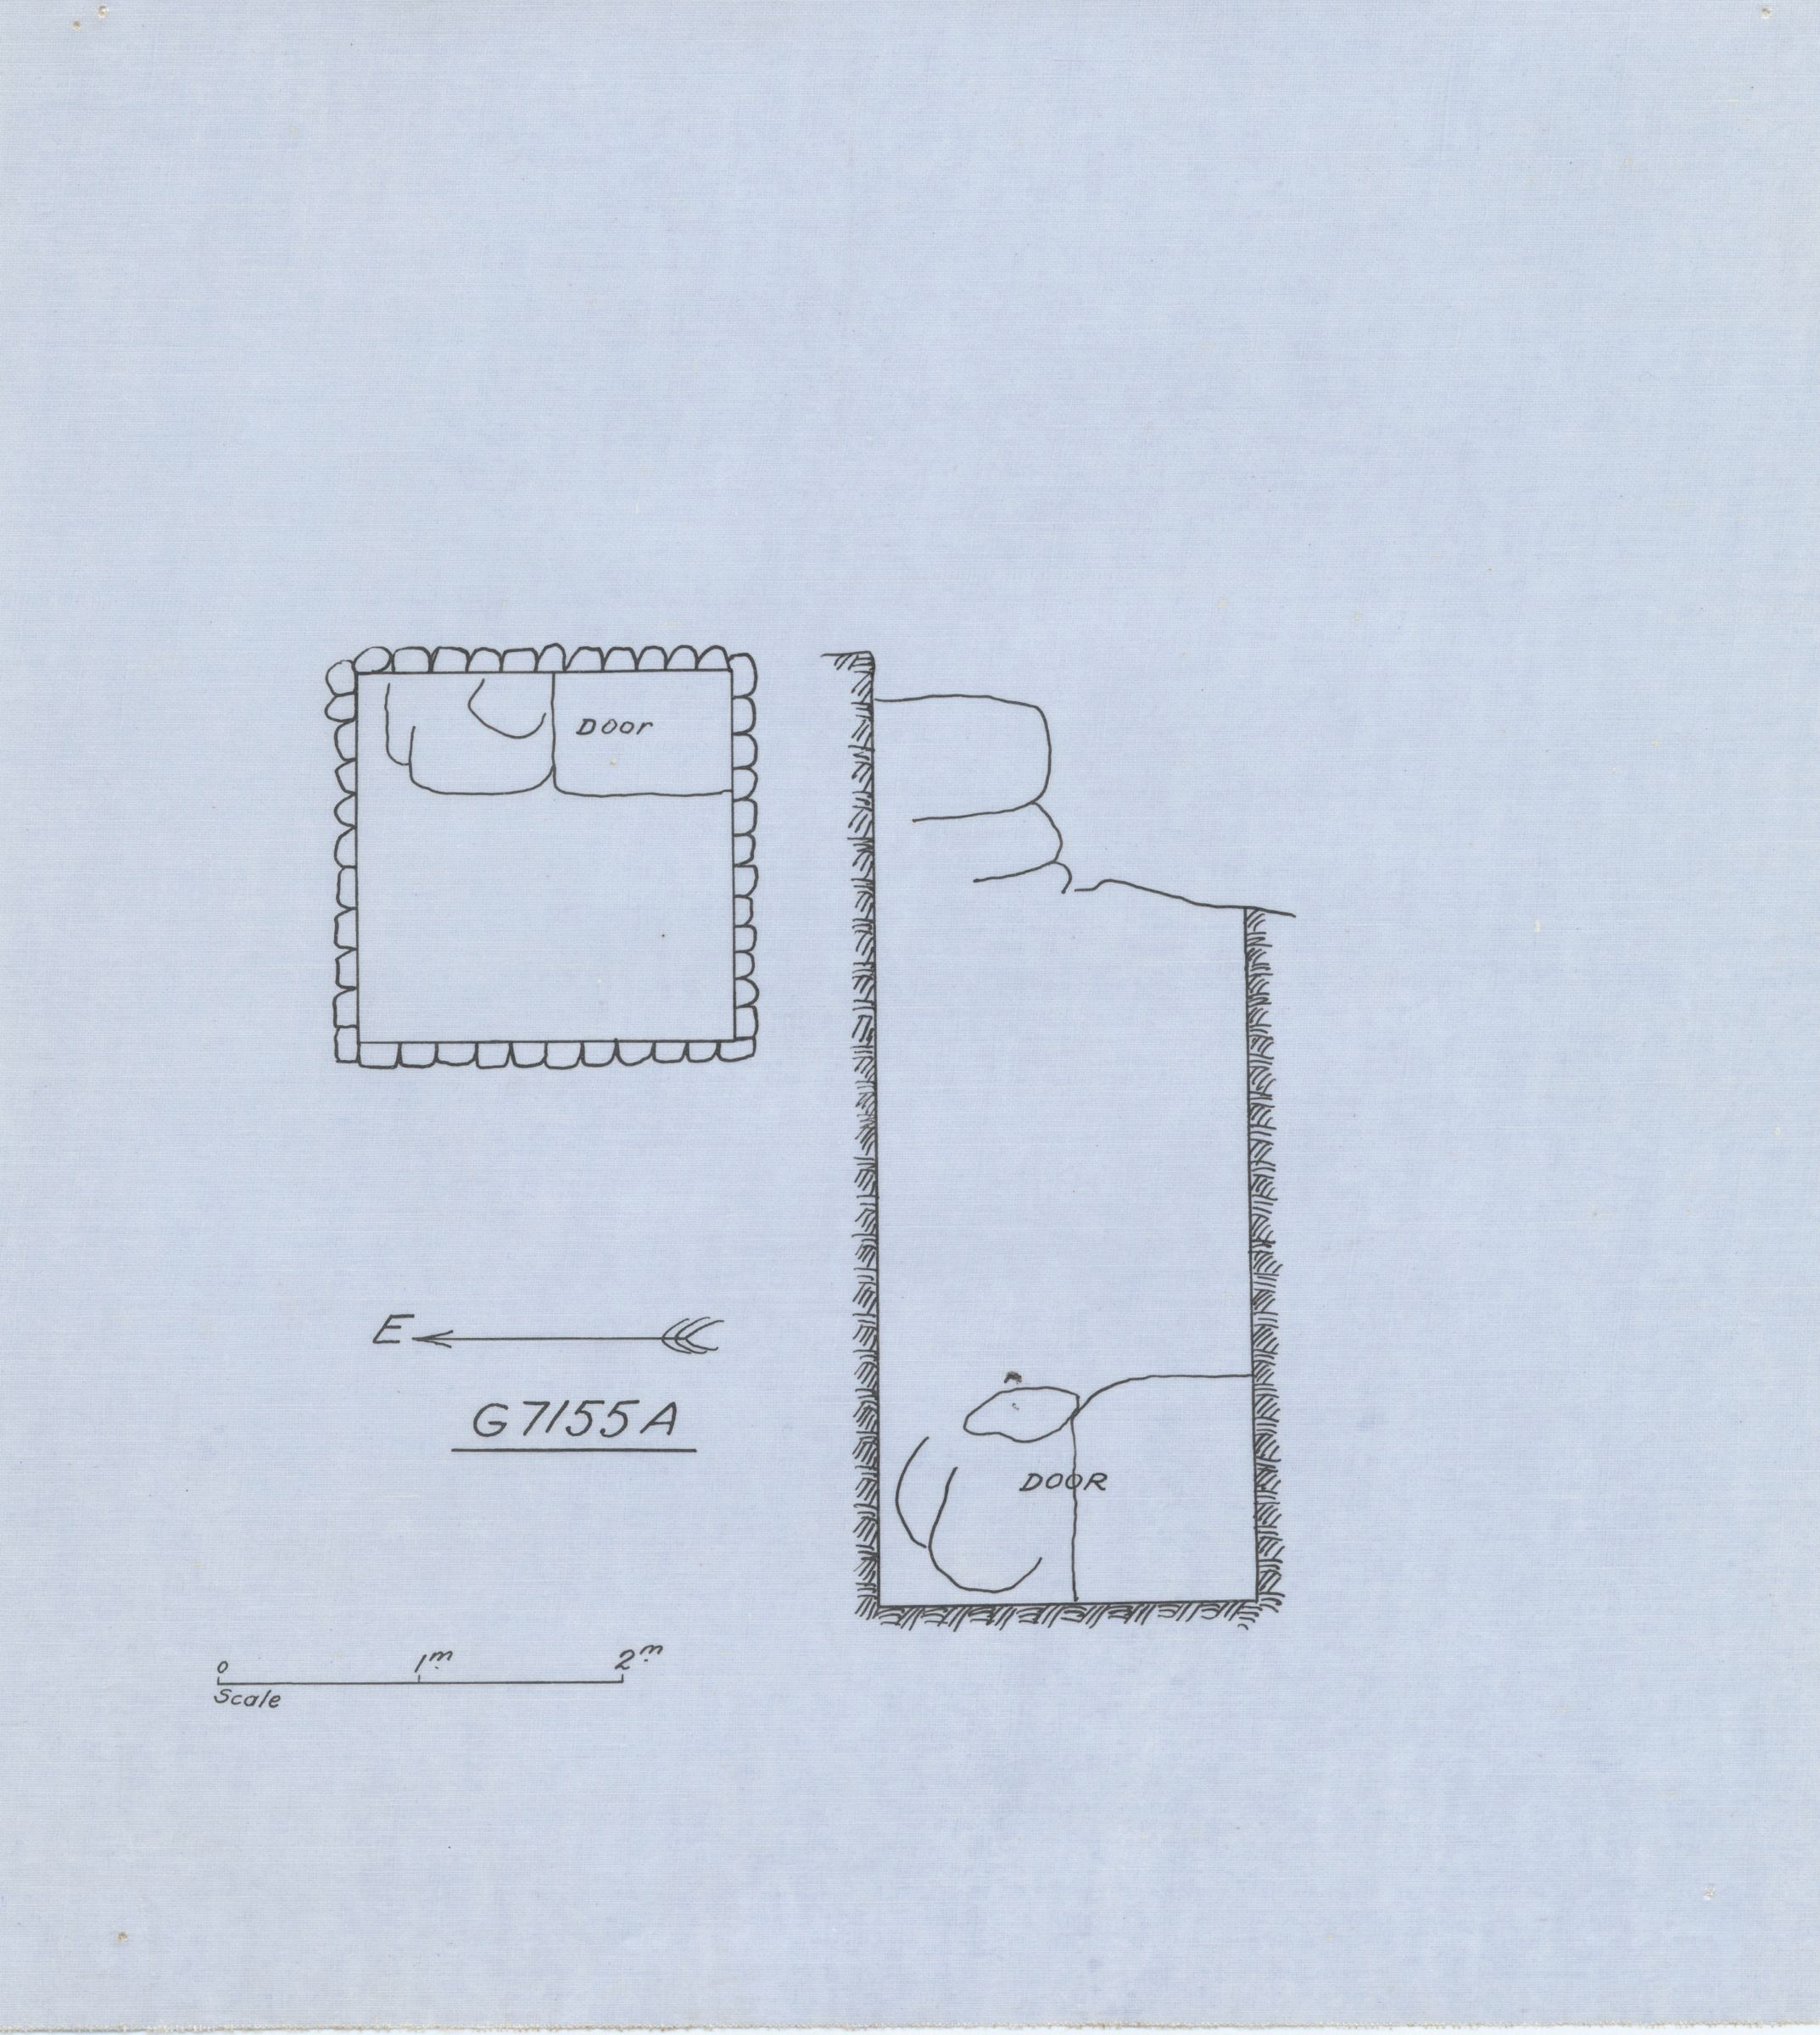 Maps and plans: G 7155, Shaft A